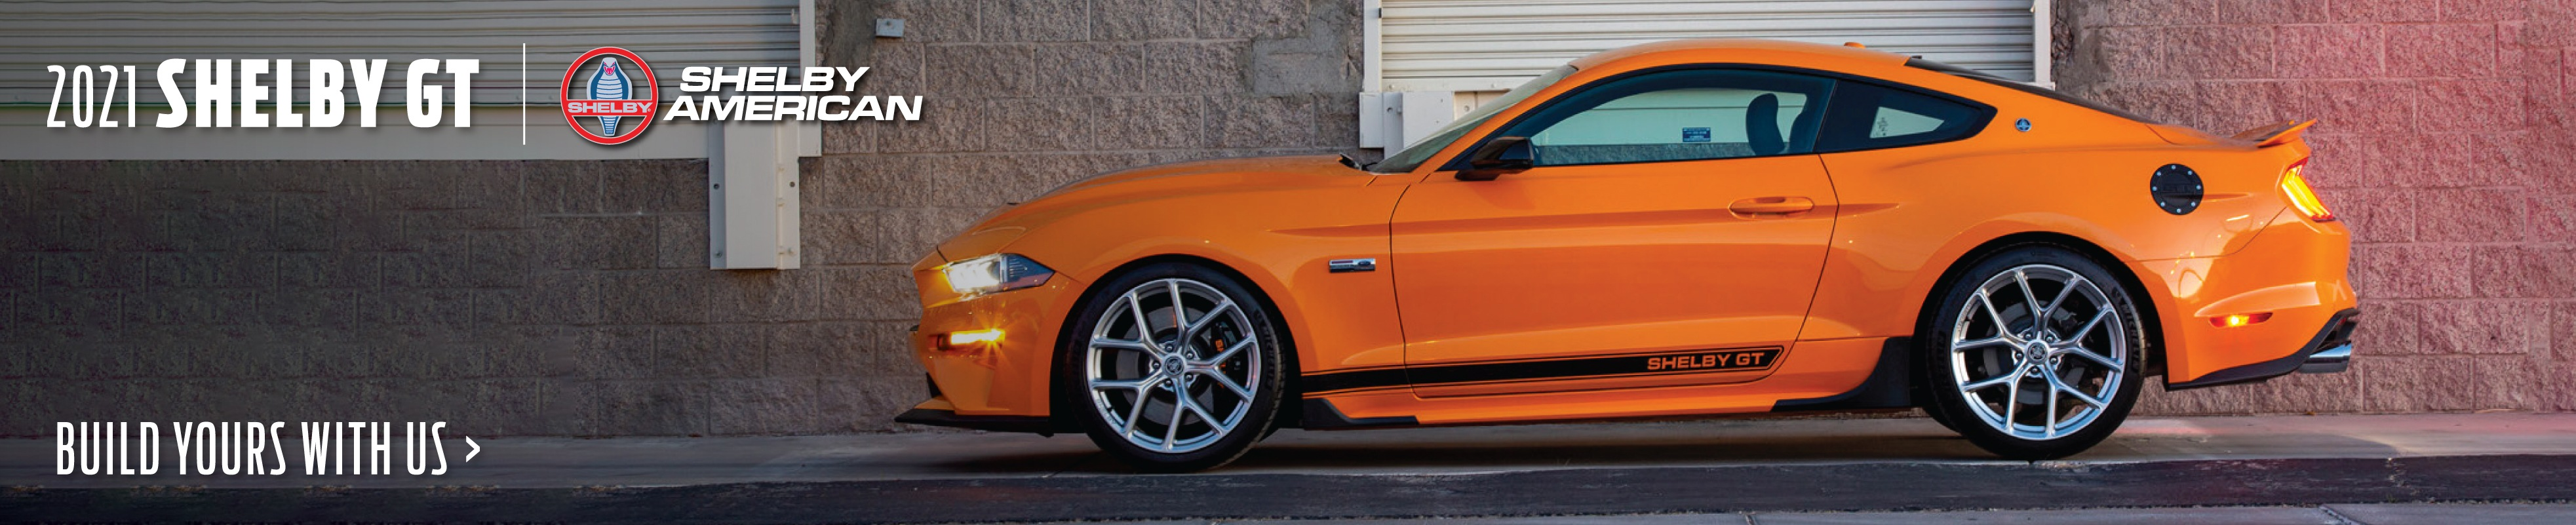 Build your Mustang Shelby GT at Bayfield Ford